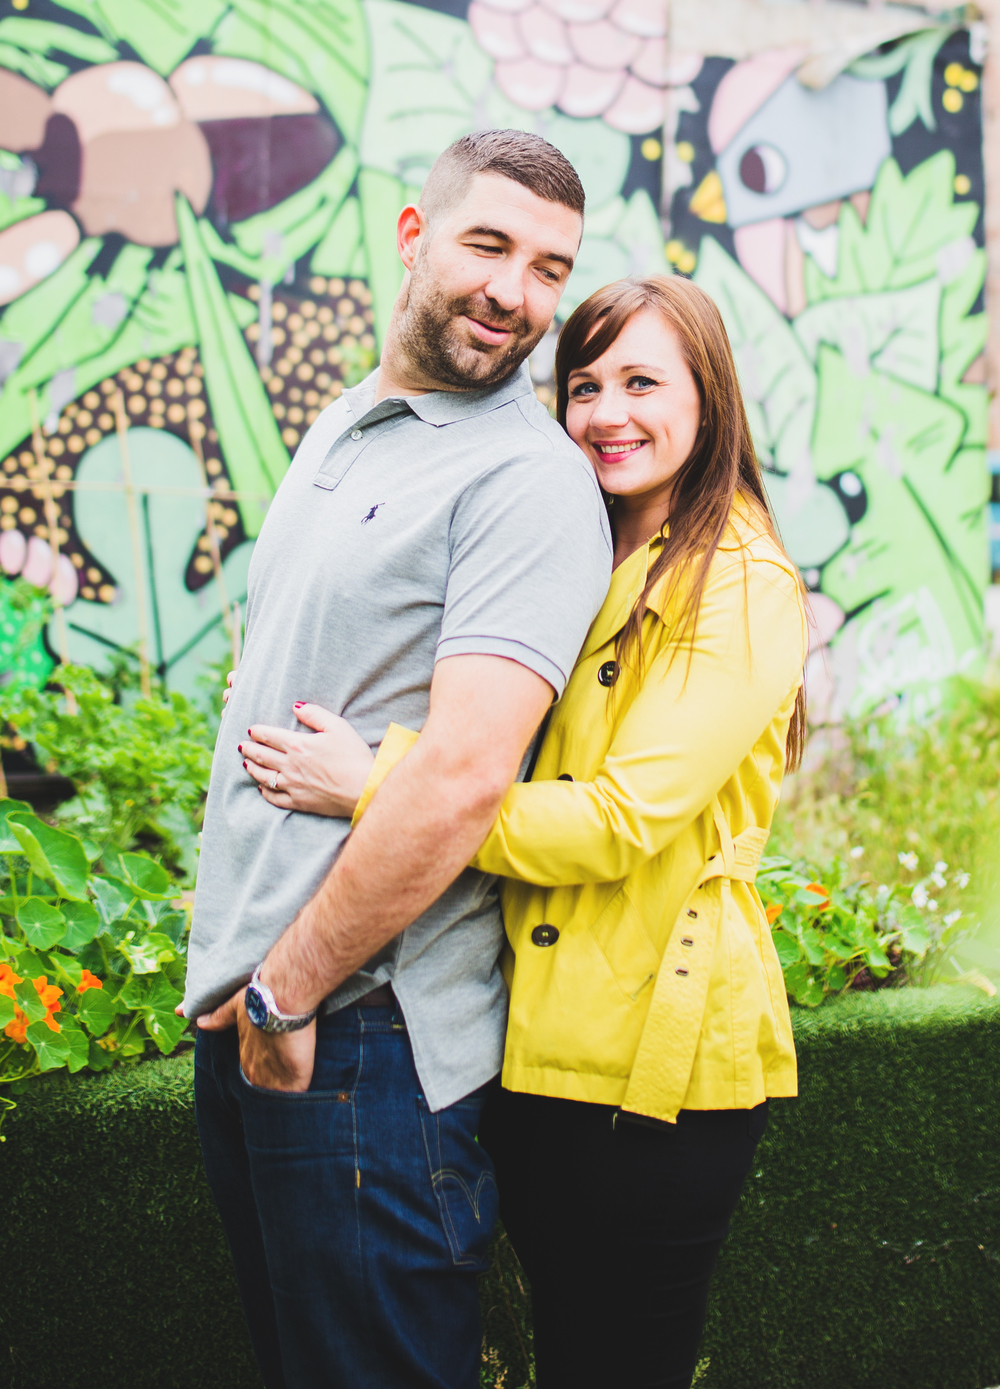 colourful and creative wedding photography in manchester